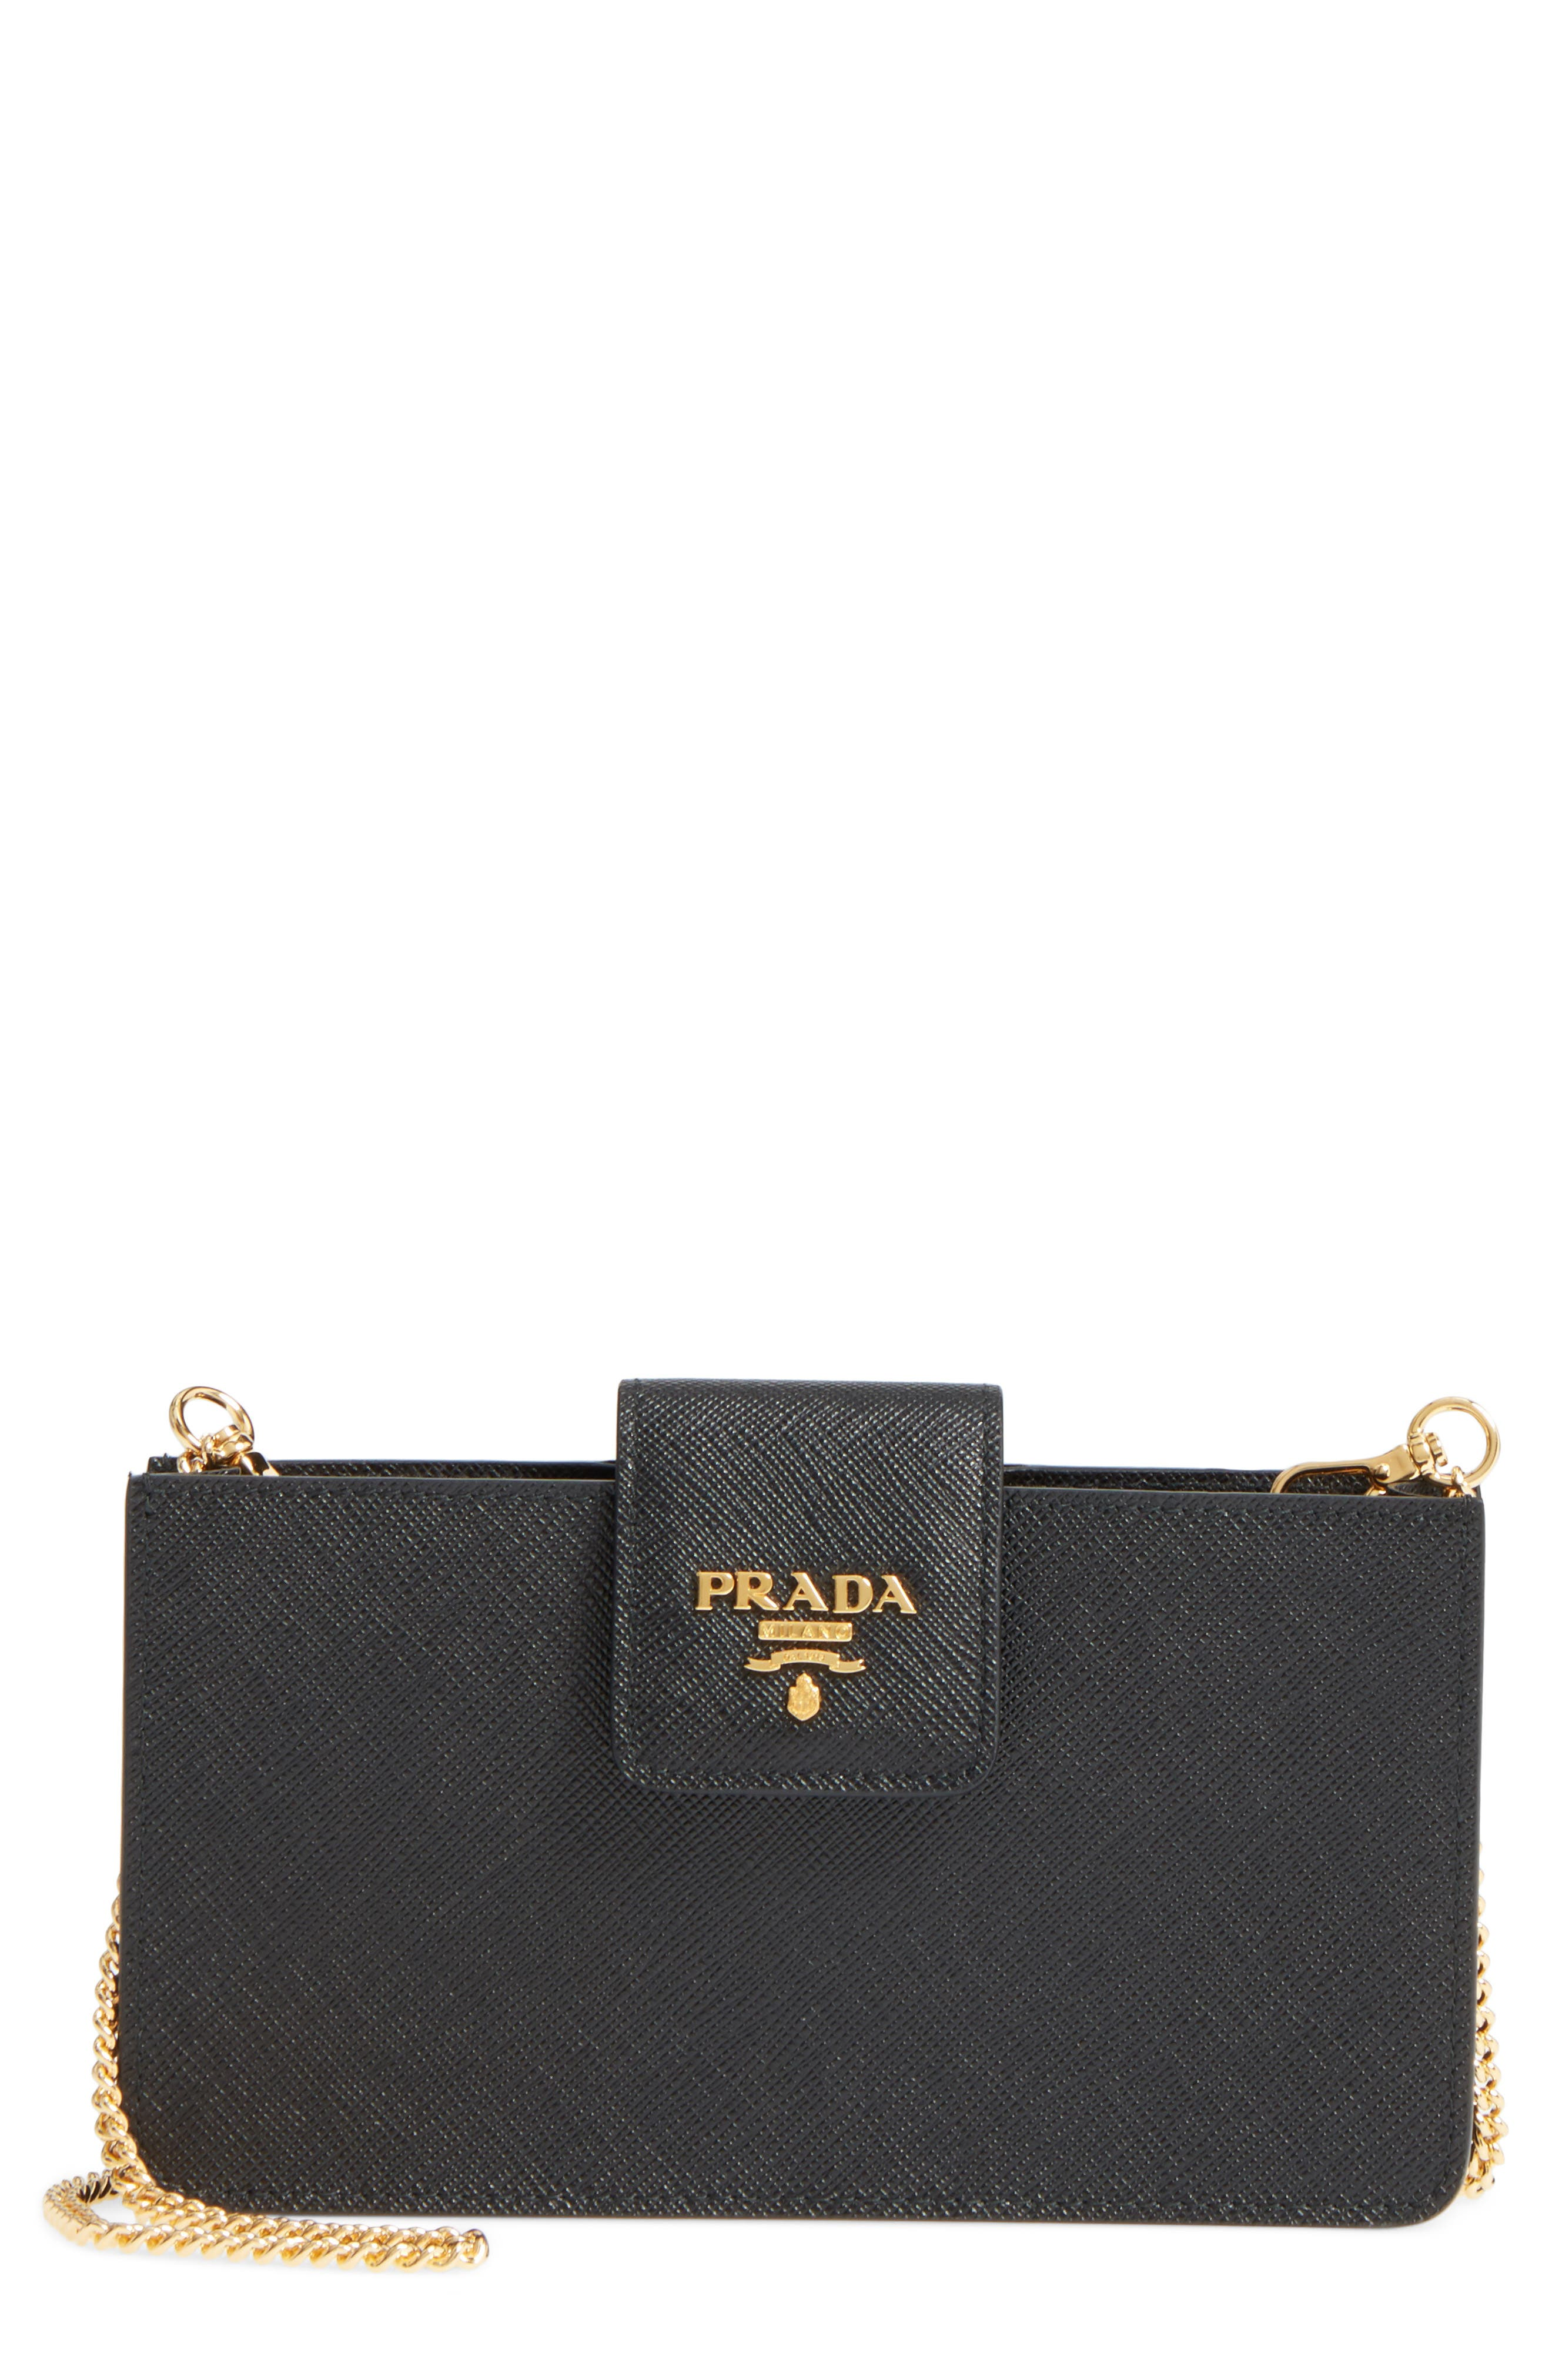 Main Image - Prada Saffiano Leather Phone Wallet on a Chain